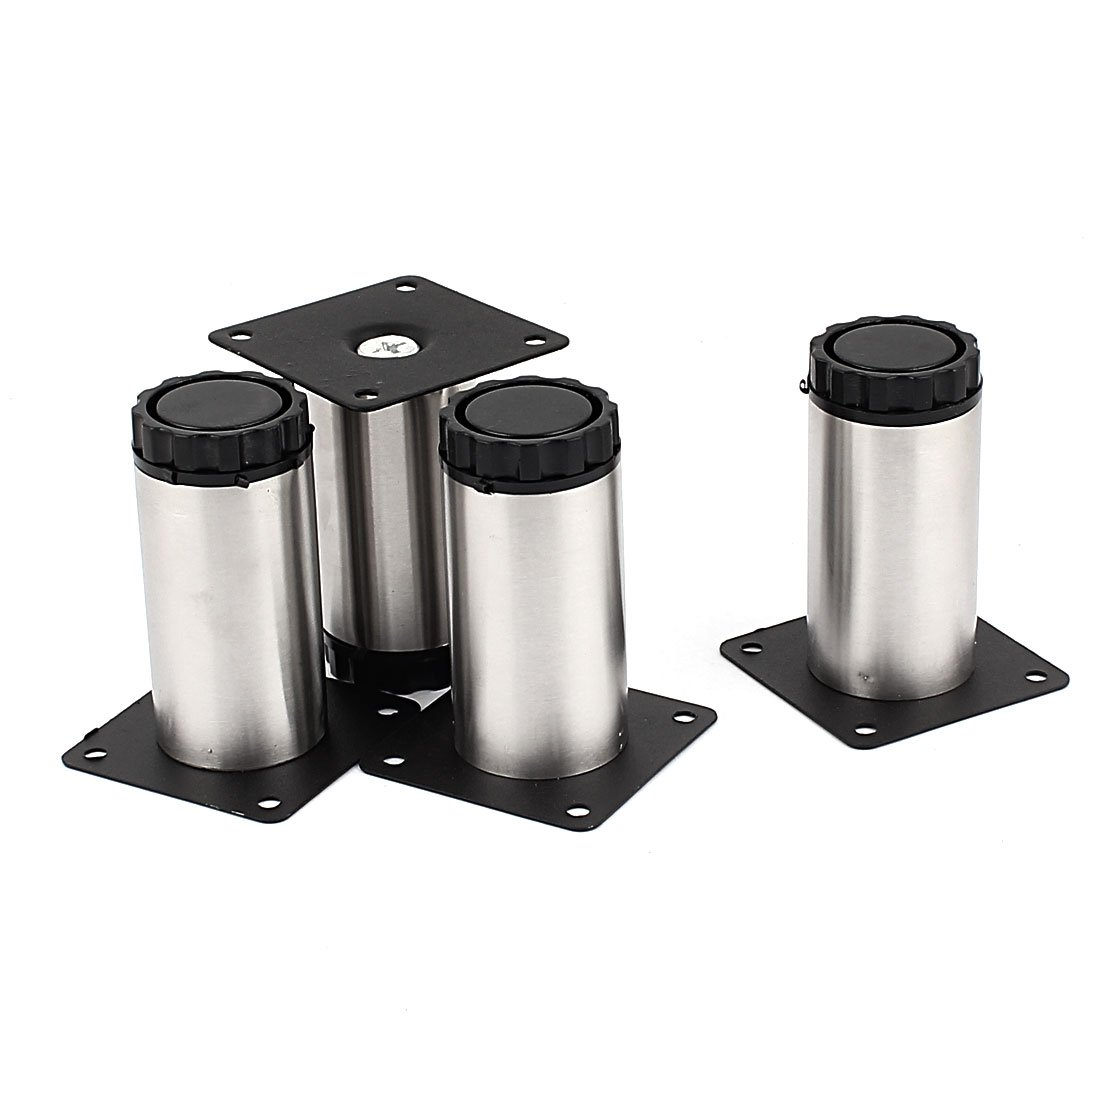 uxcell Adjustable Cabinet Legs 4pcs for Furniture Sofa Tea Table Bed Shelf